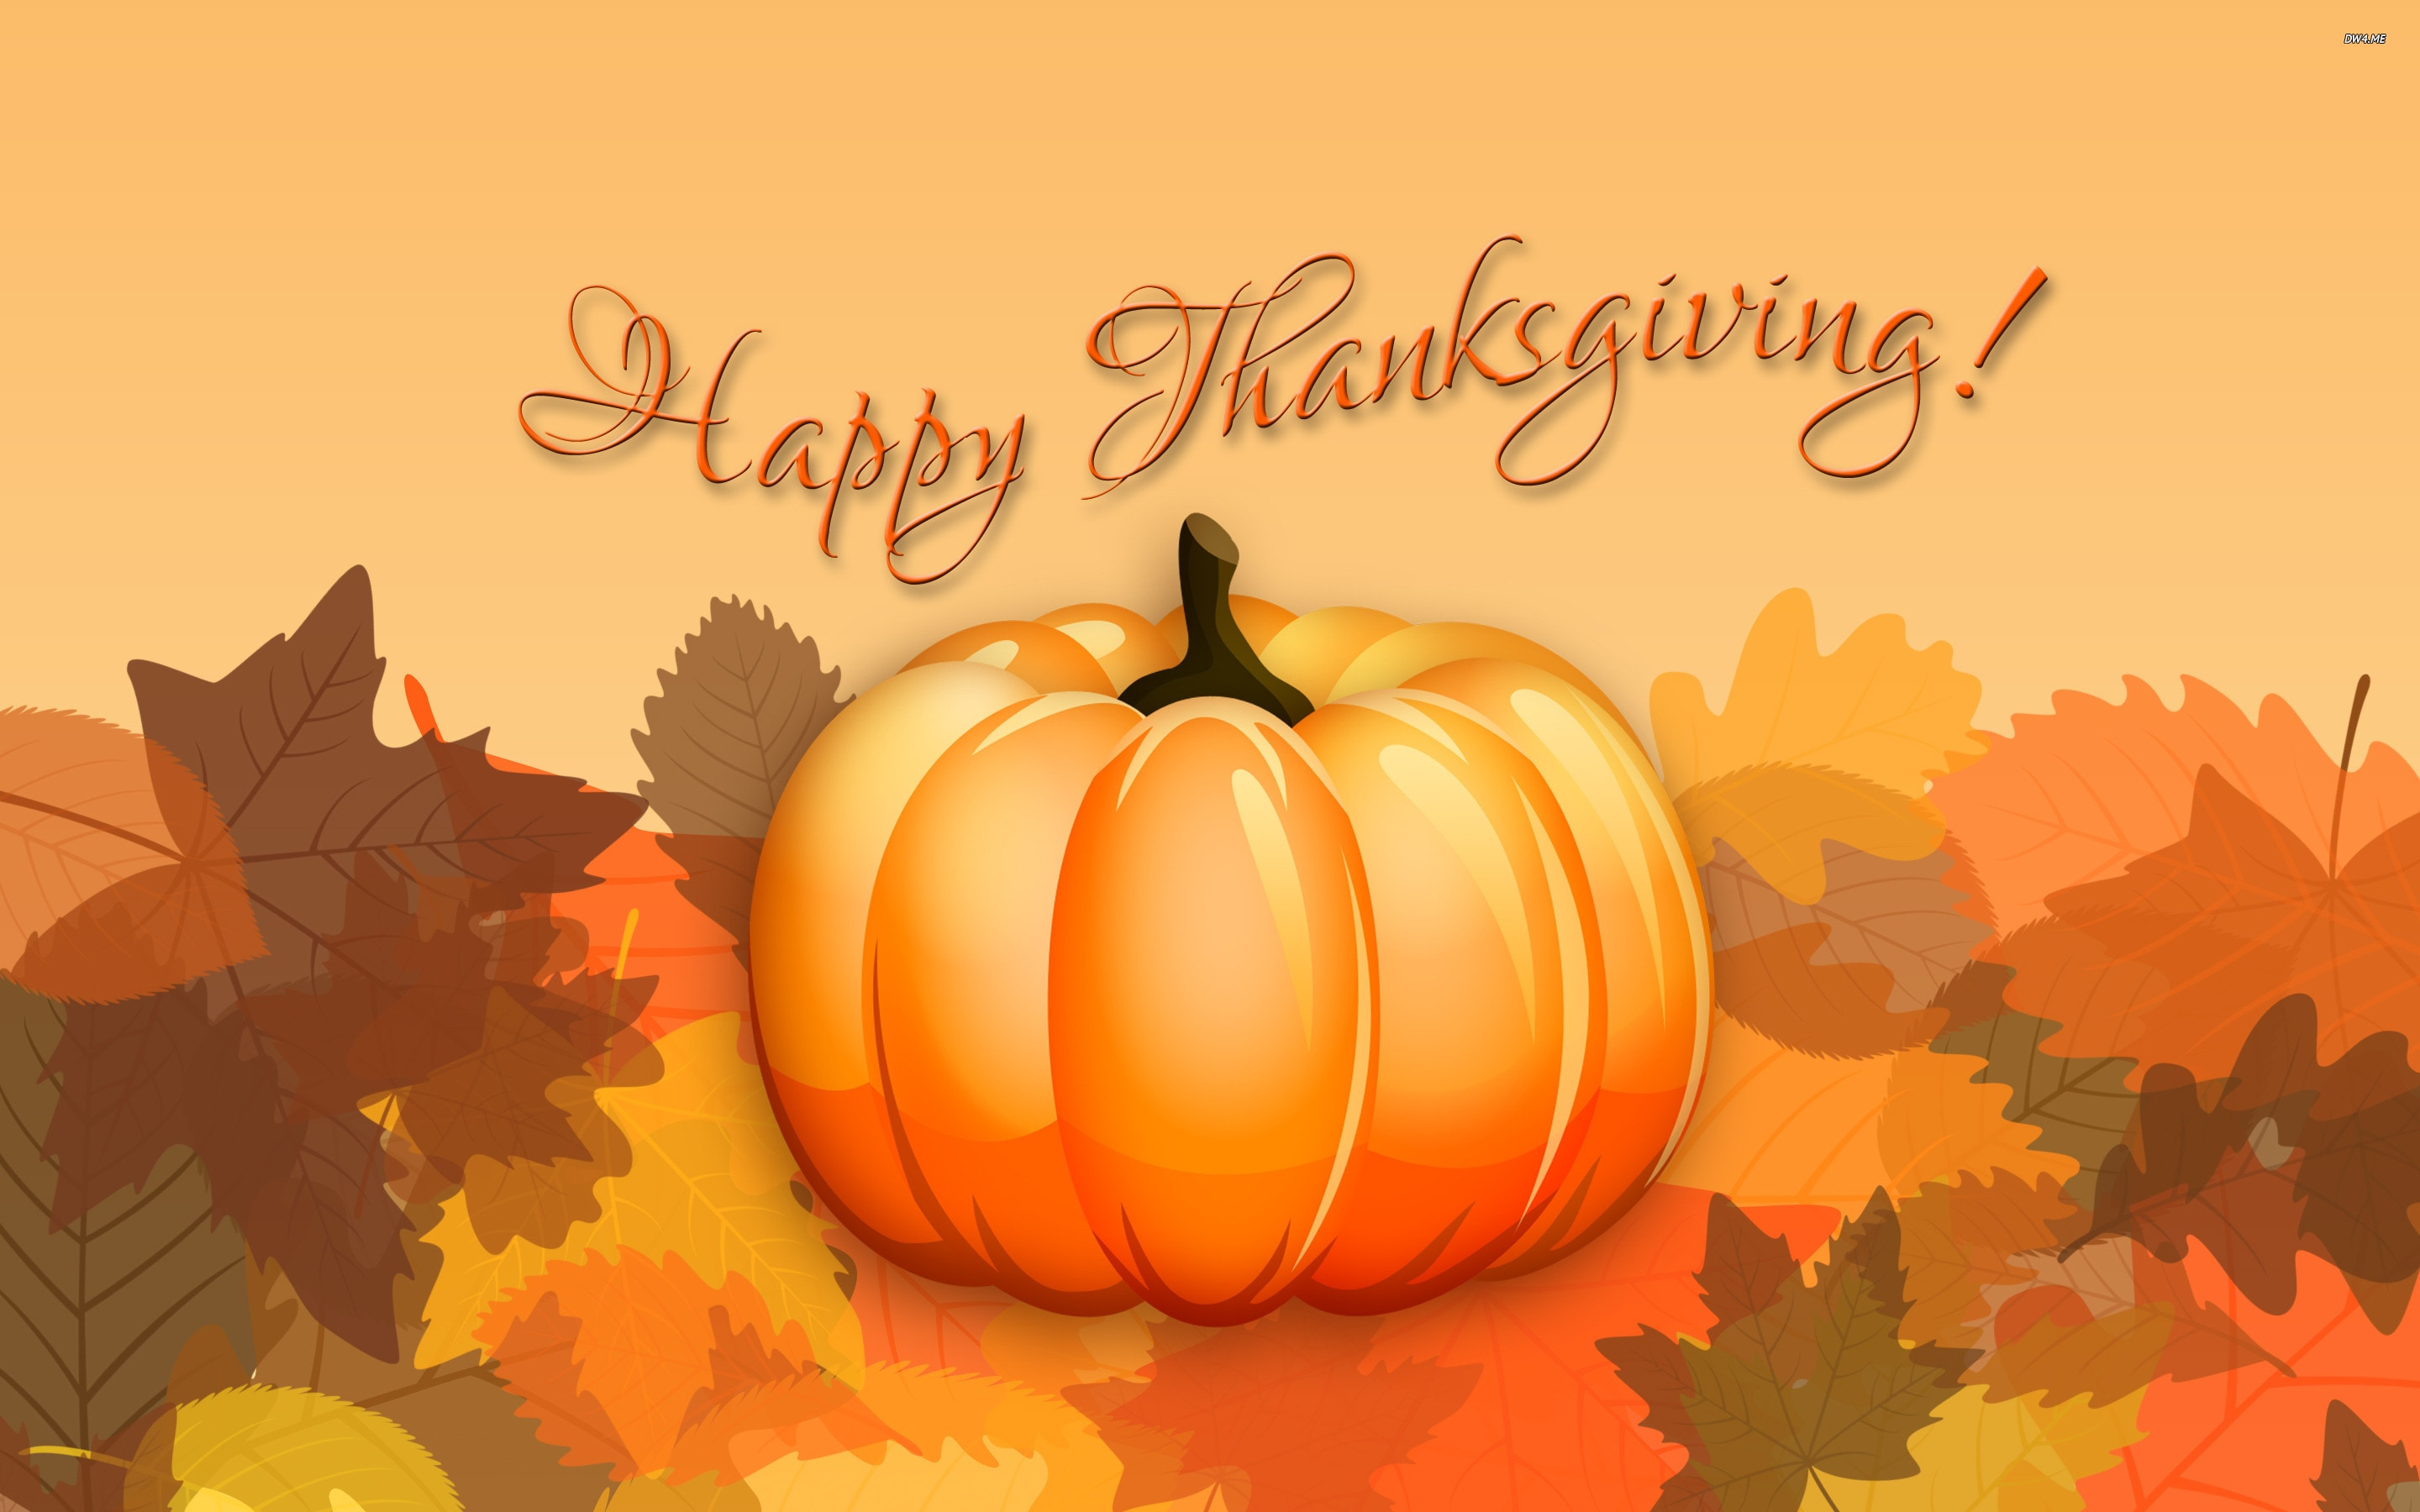 Download the best thanksgiving wallpapers 2015 for mobile - Wallpaper 1024x768 ...